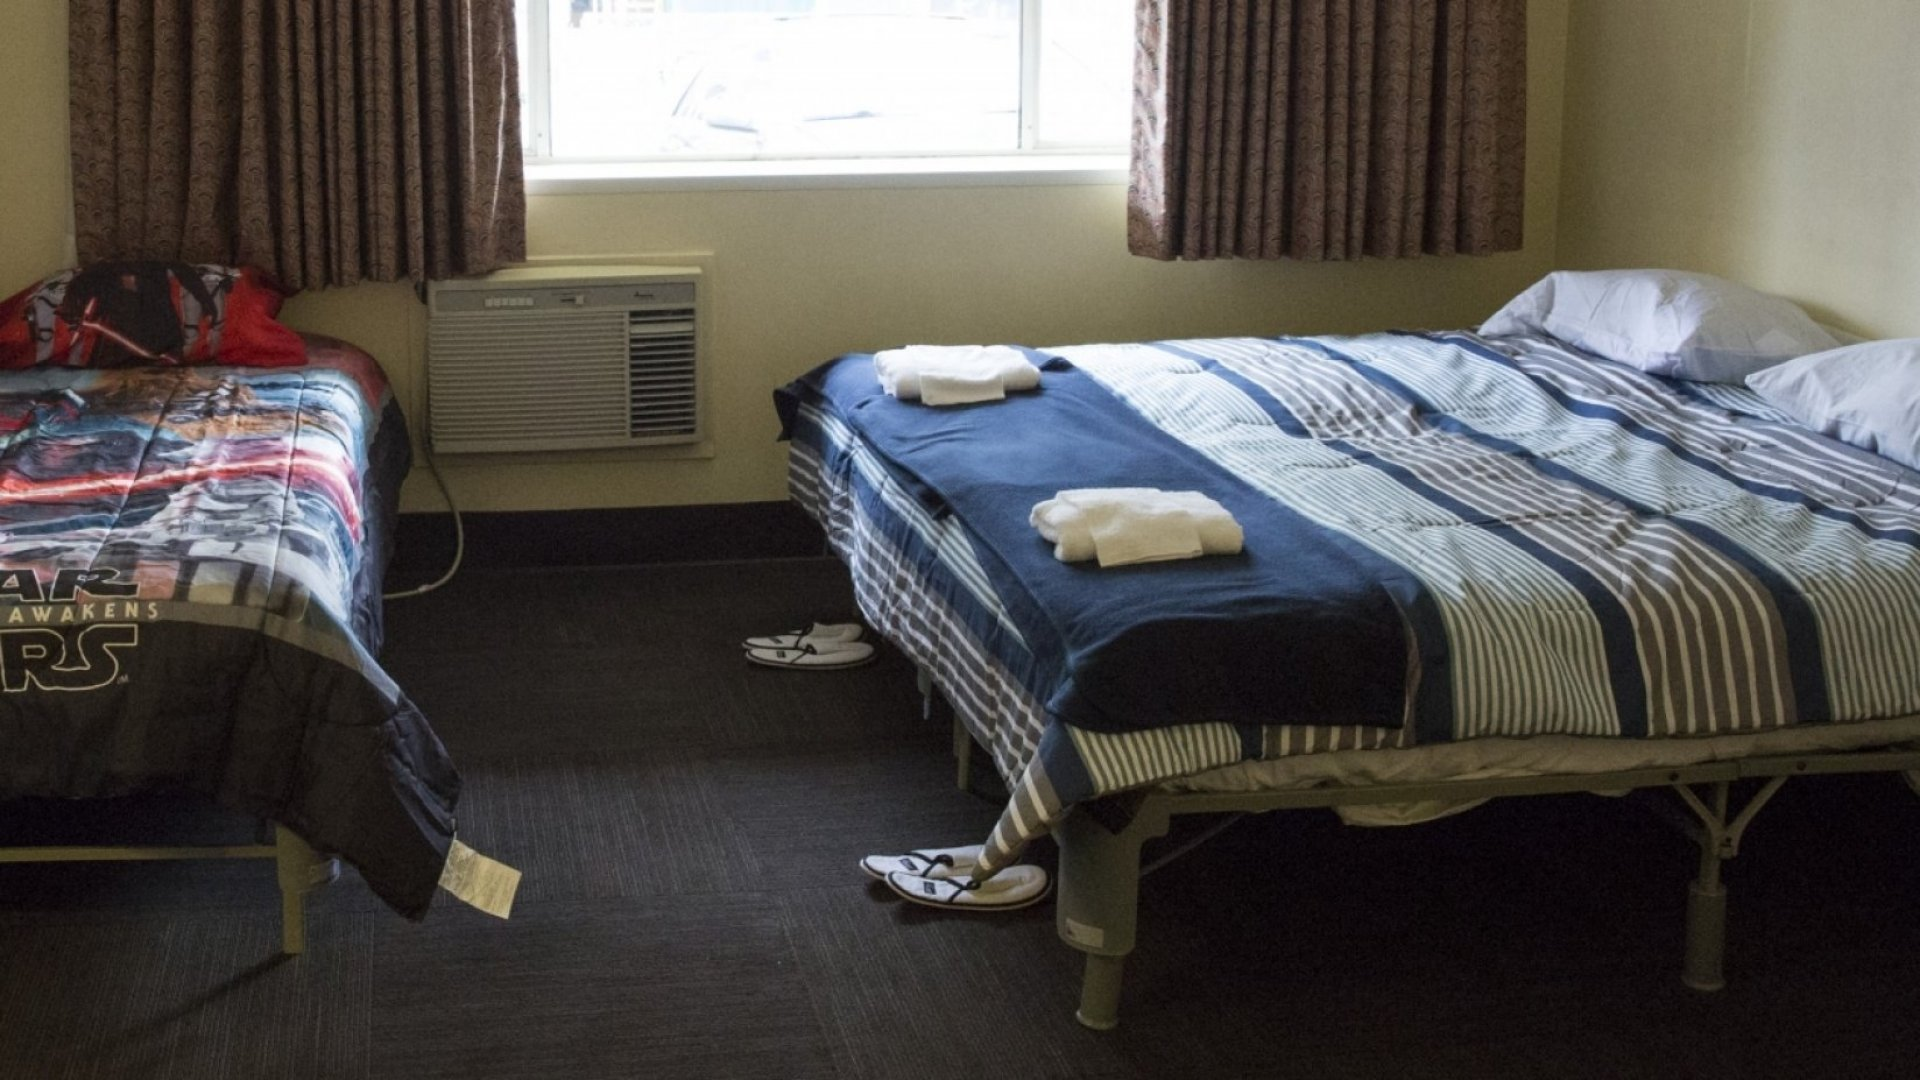 A bedroom is pictured inside a former motel building owned by Amazon that the company has offered to the non profit Mary's Place to use as a temporary shelter for homeless women and their families in Seattle, Washington.